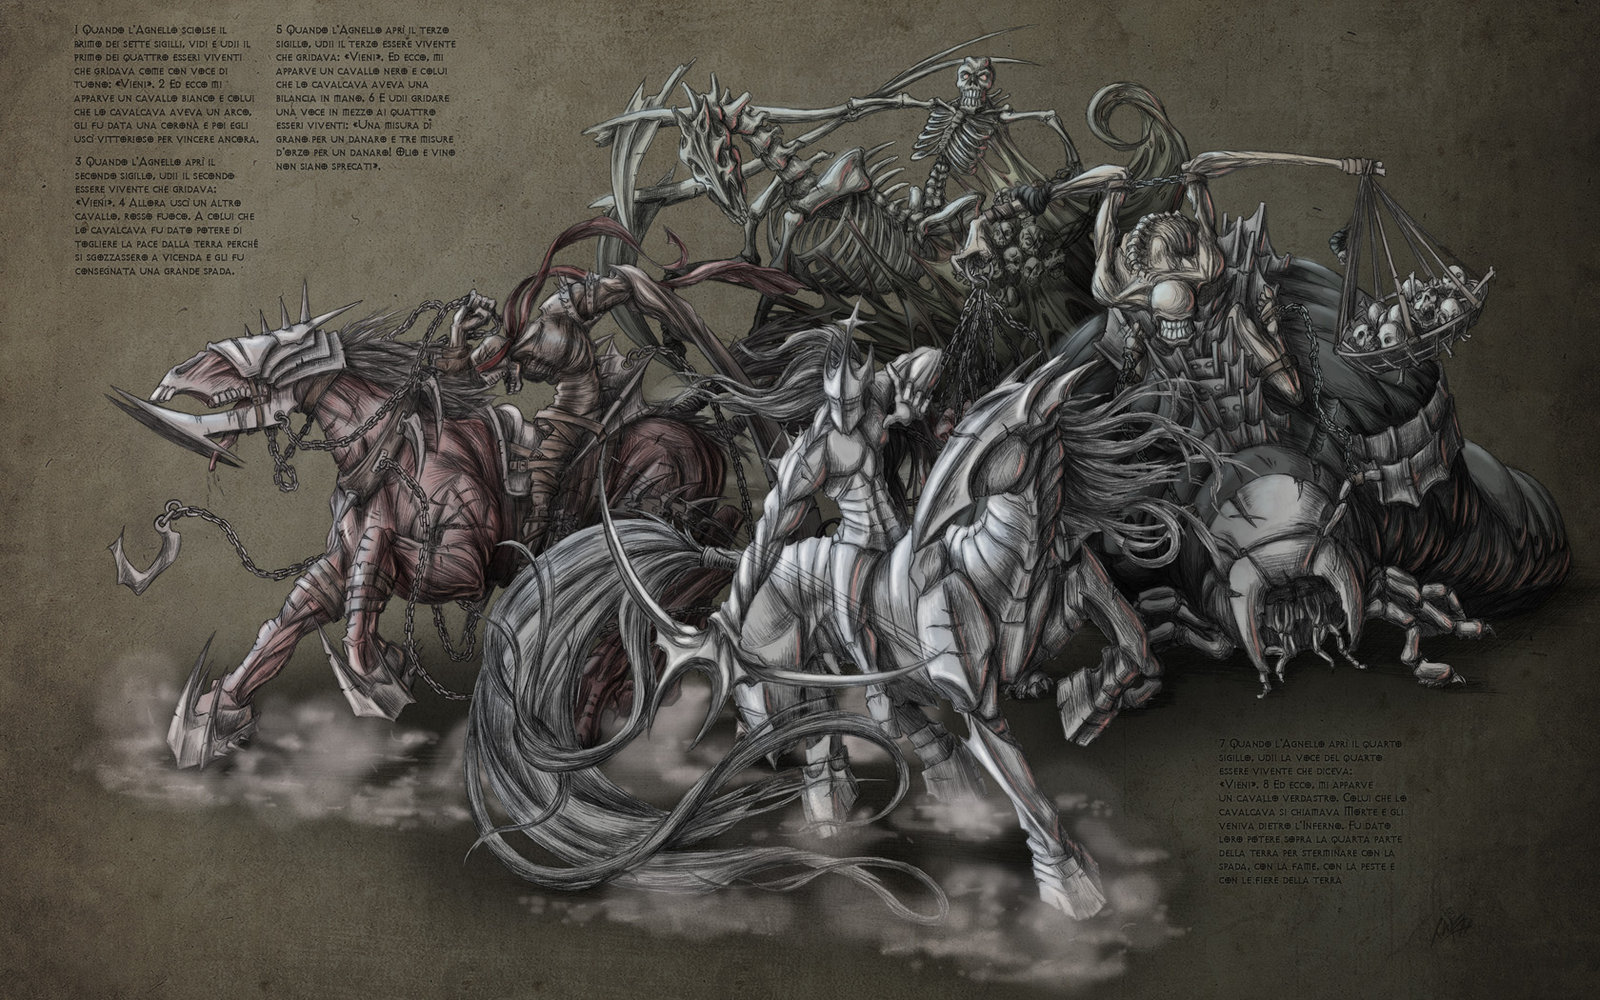 Four Horsemen of Apocalypse by bigTaki 1600x1000